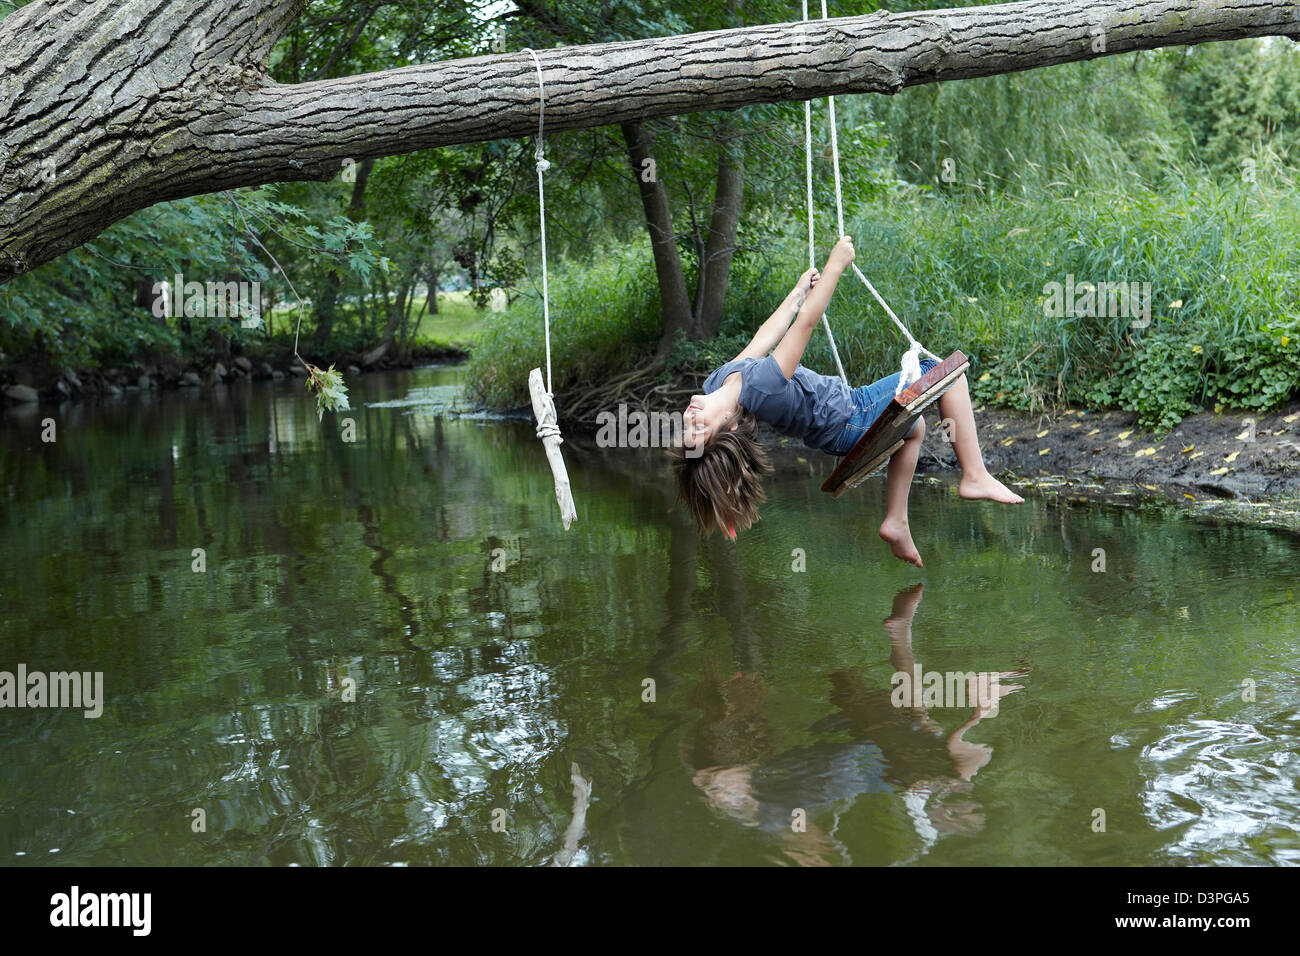 9 year old girl swinging above creek - Stock Image